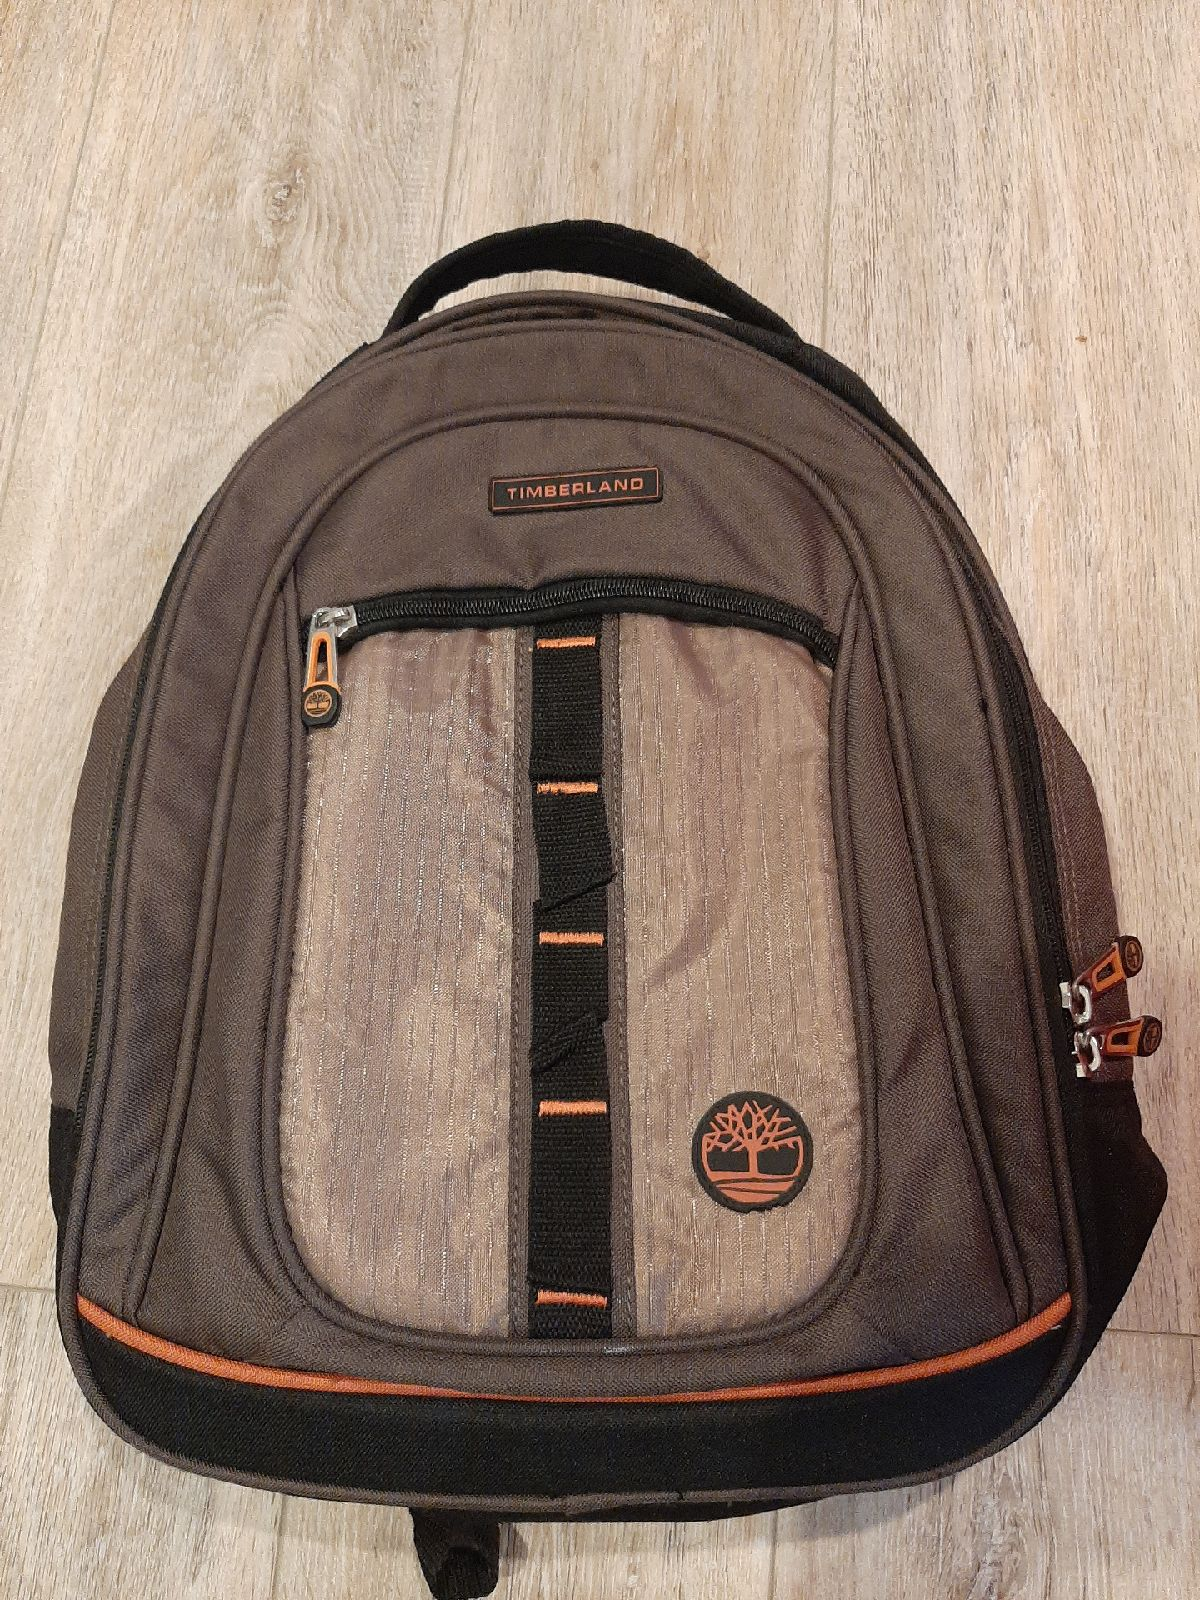 NWOT Timberland backpack brown..